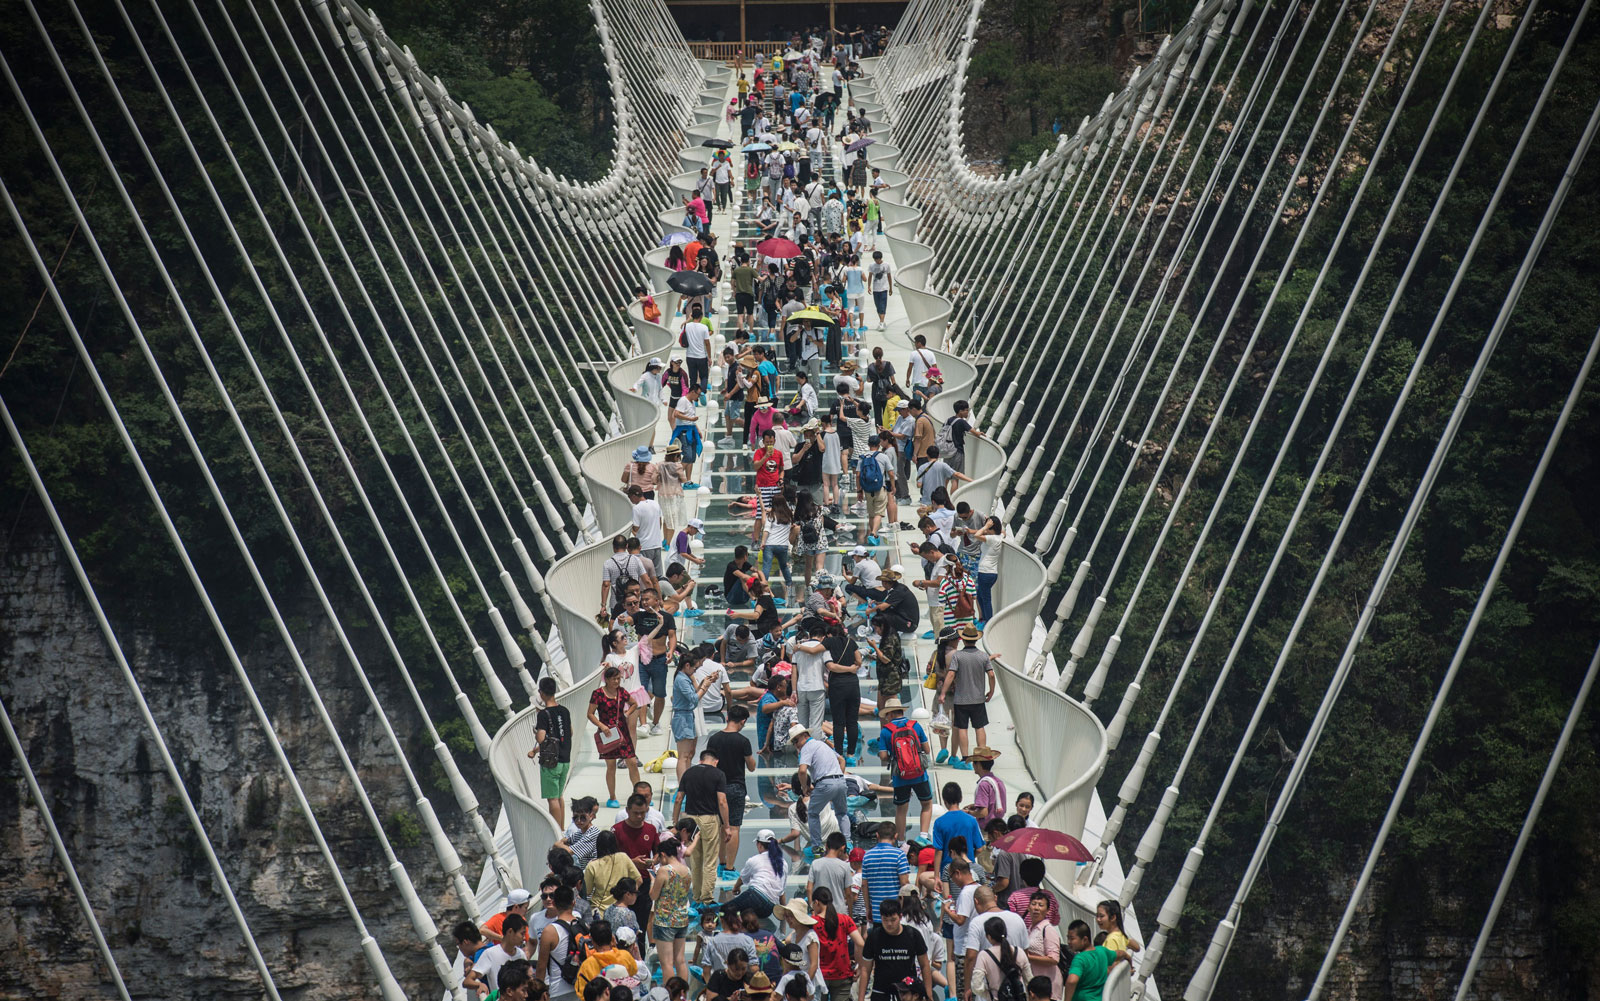 China's longest glass bridge closed two weeks after opening.